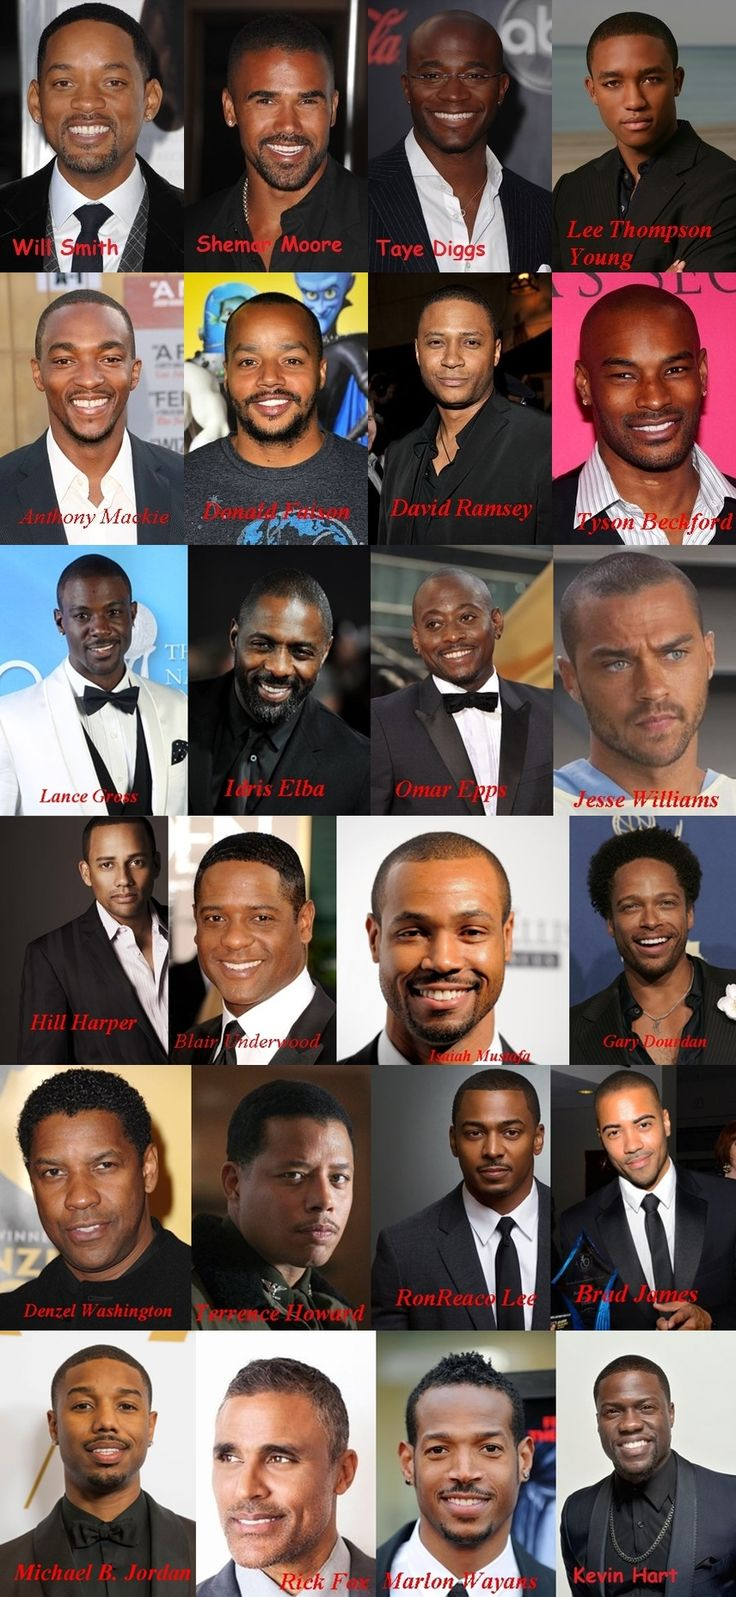 Will Smith Shemar Moore Taye Diggs Lee Thompson Young Anthony Mackie Donald Faison David Ramsey Tyson Beckford Lance Gross Idris Elba Omar Epps Jesse Williams Hill Harper Blair Underwood Isaiah Mustafa Gary Dourdan Denzel Washington Terrence Howard RonReaco Lee Brad James Michael B. Jordan Rick Fox Marlon Wayans Kevin Hart